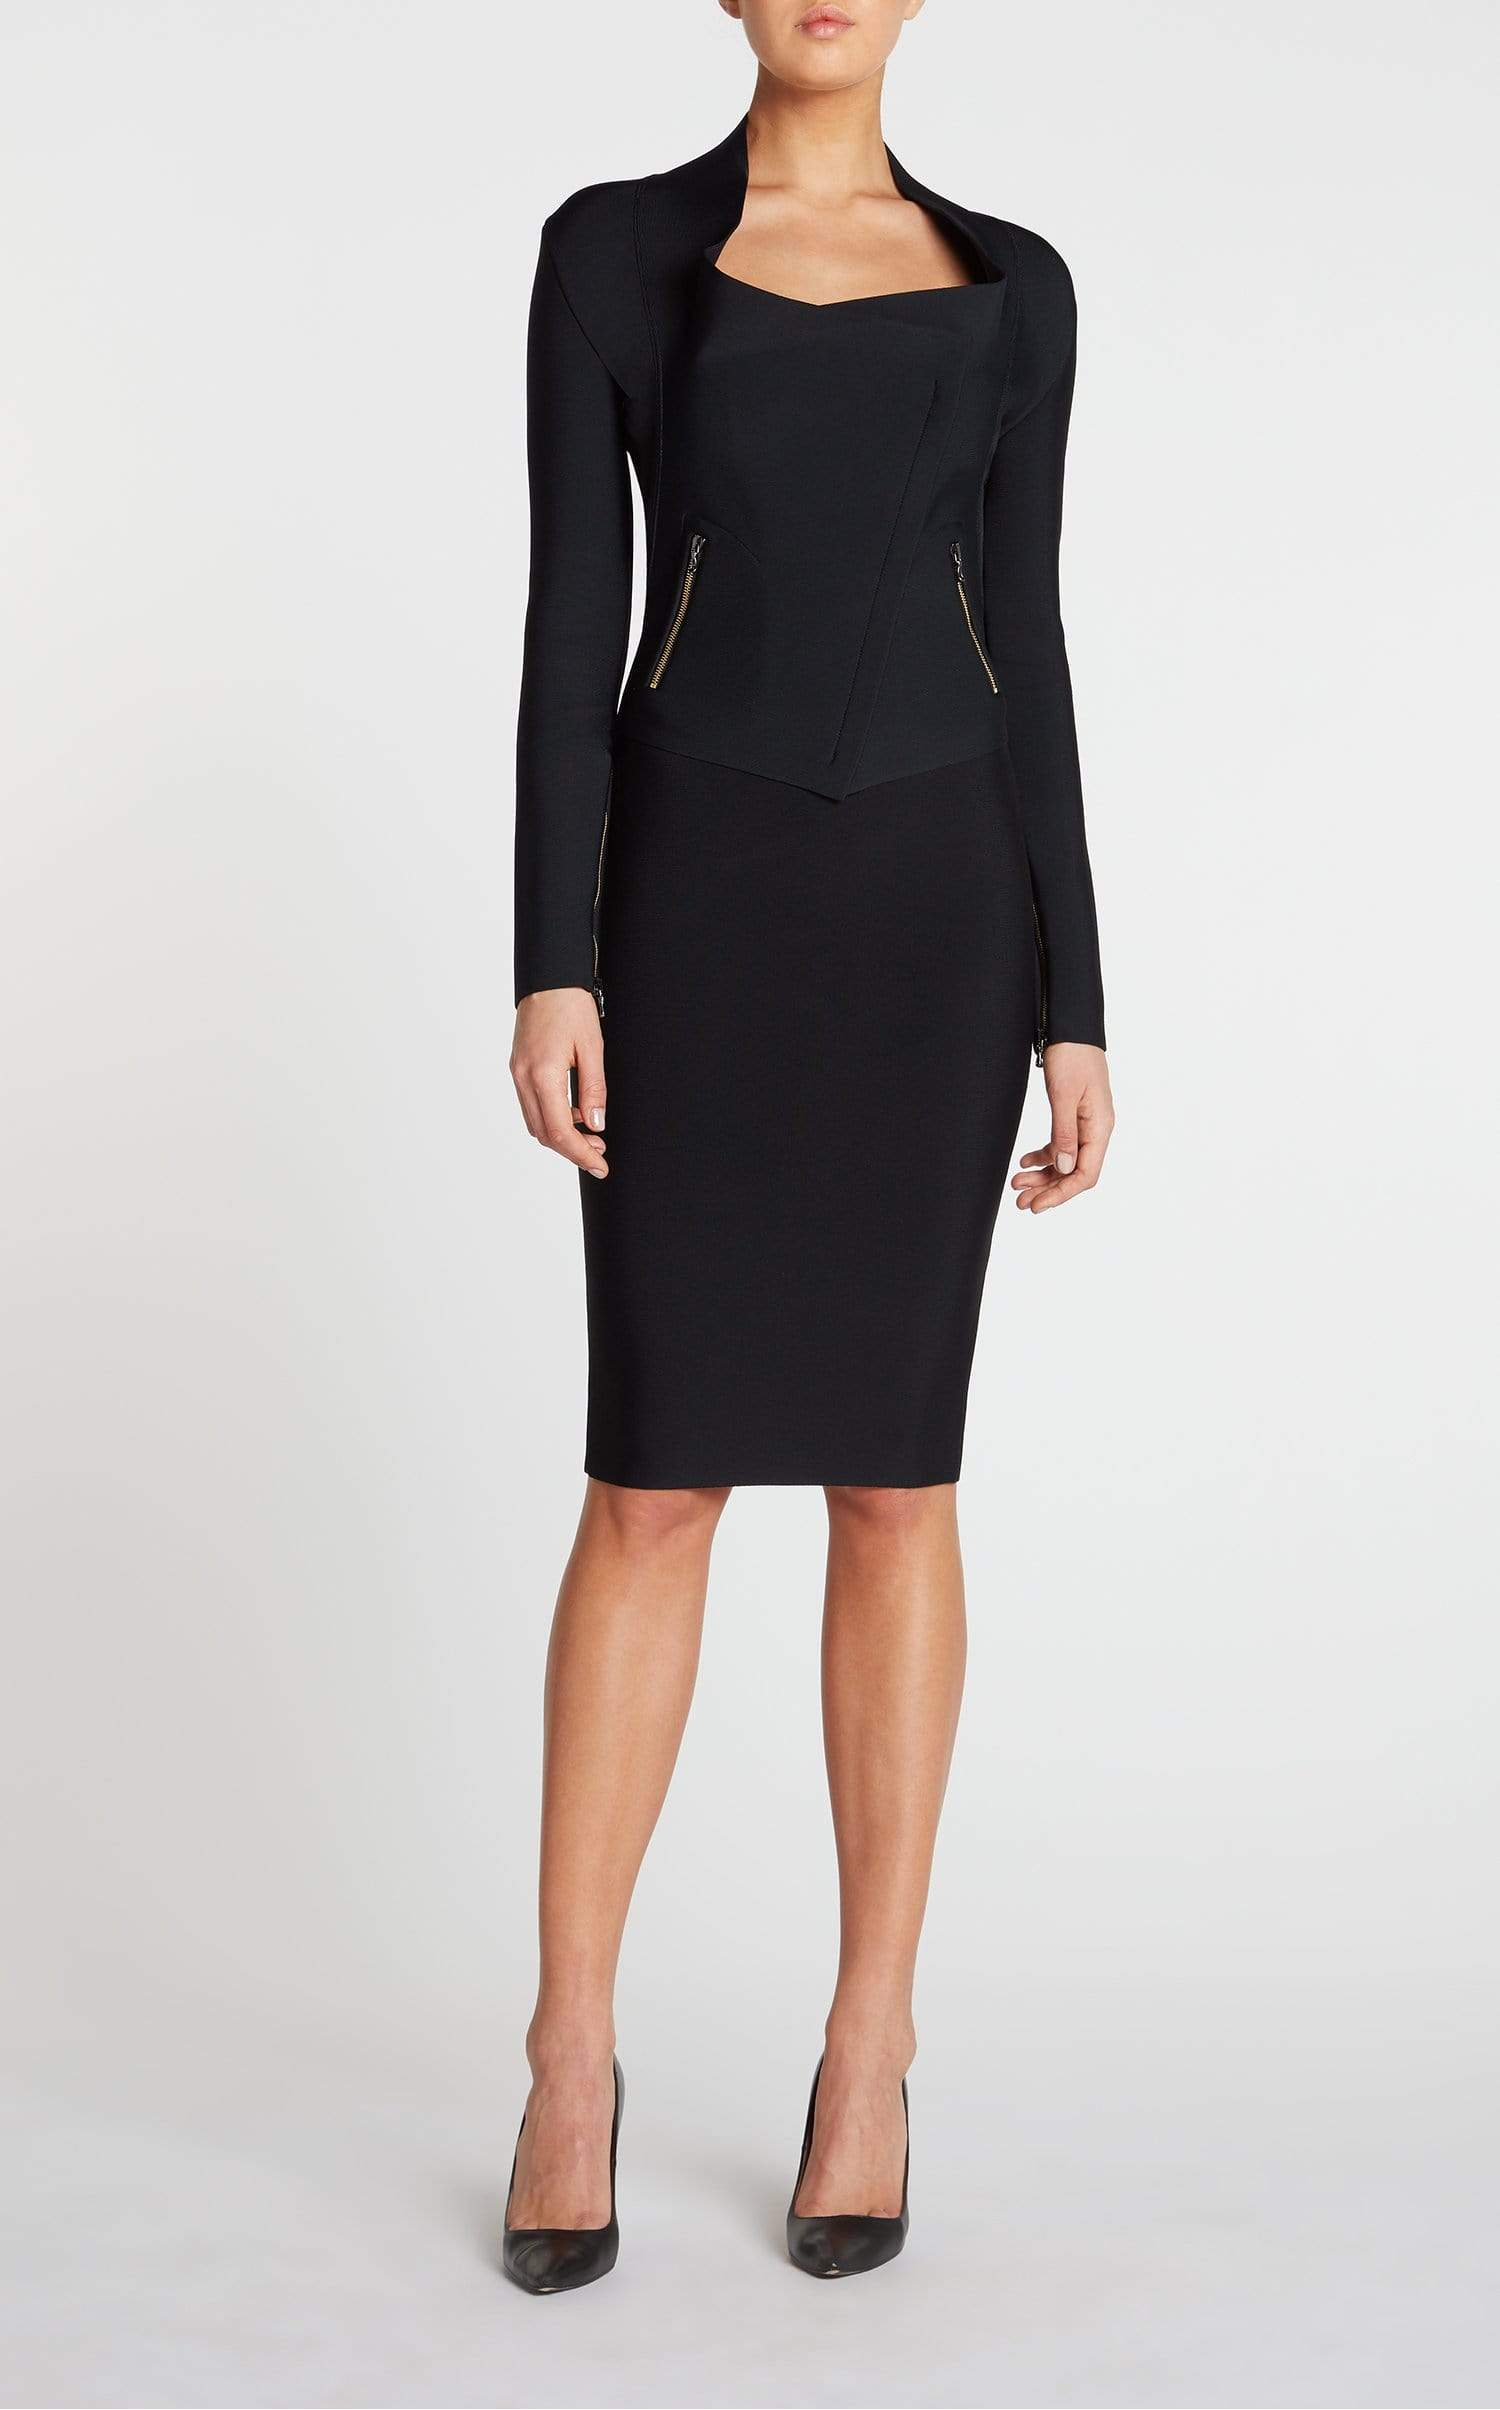 Solar Jacket In Black from Roland Mouret